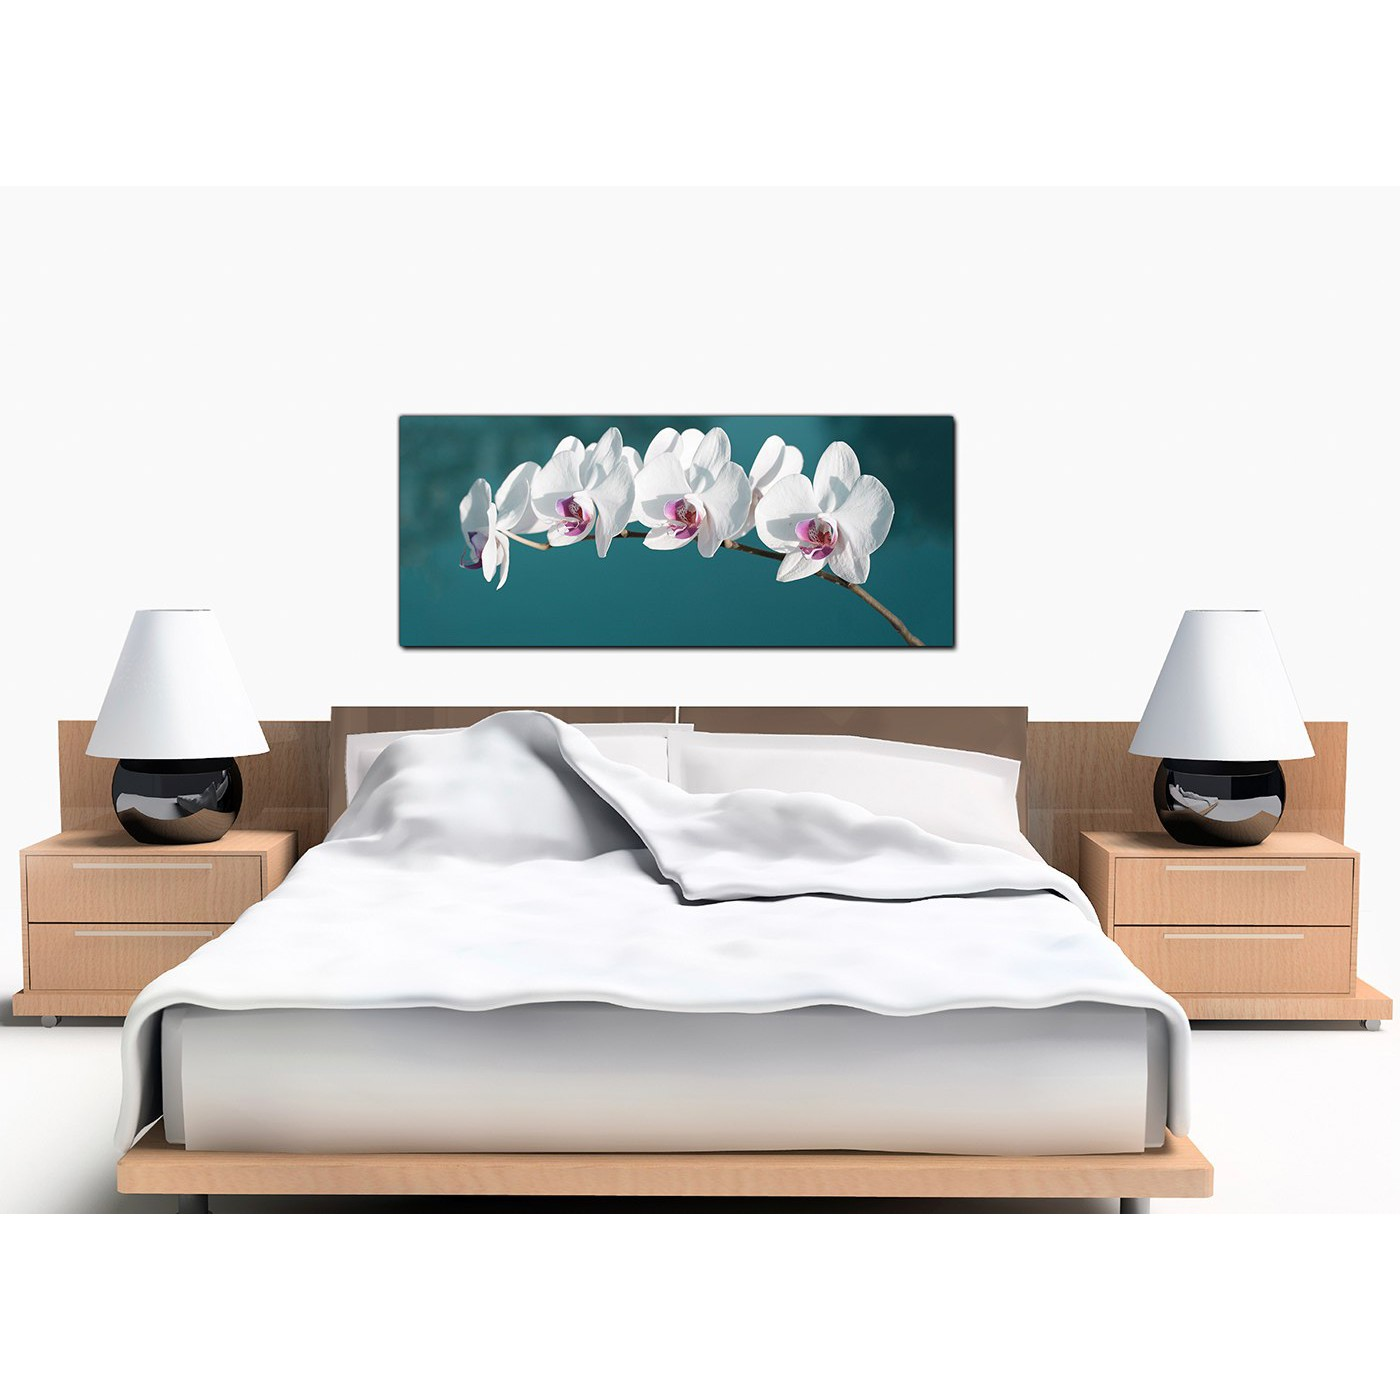 Large Teal Canvas Pictures of White Orchids